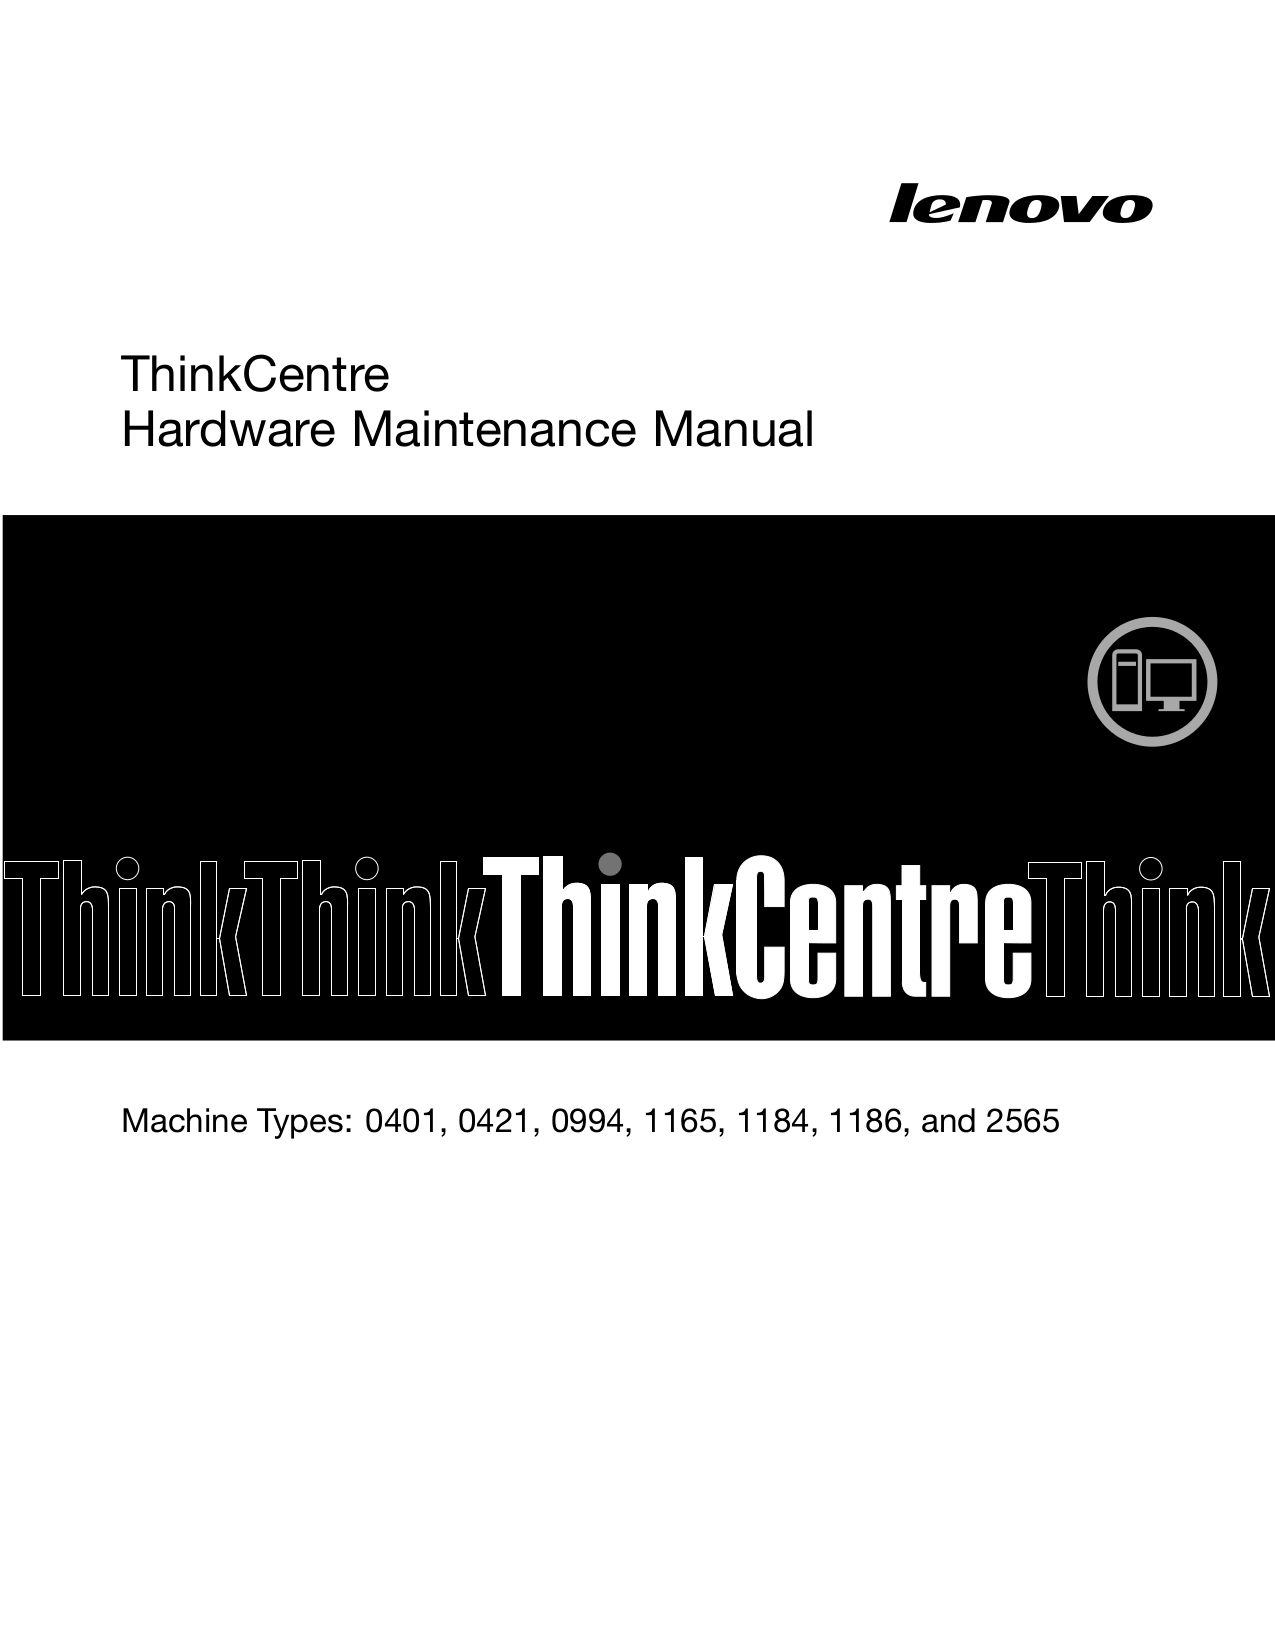 pdf for Lenovo Desktop ThinkCentre A70z 1184 manual